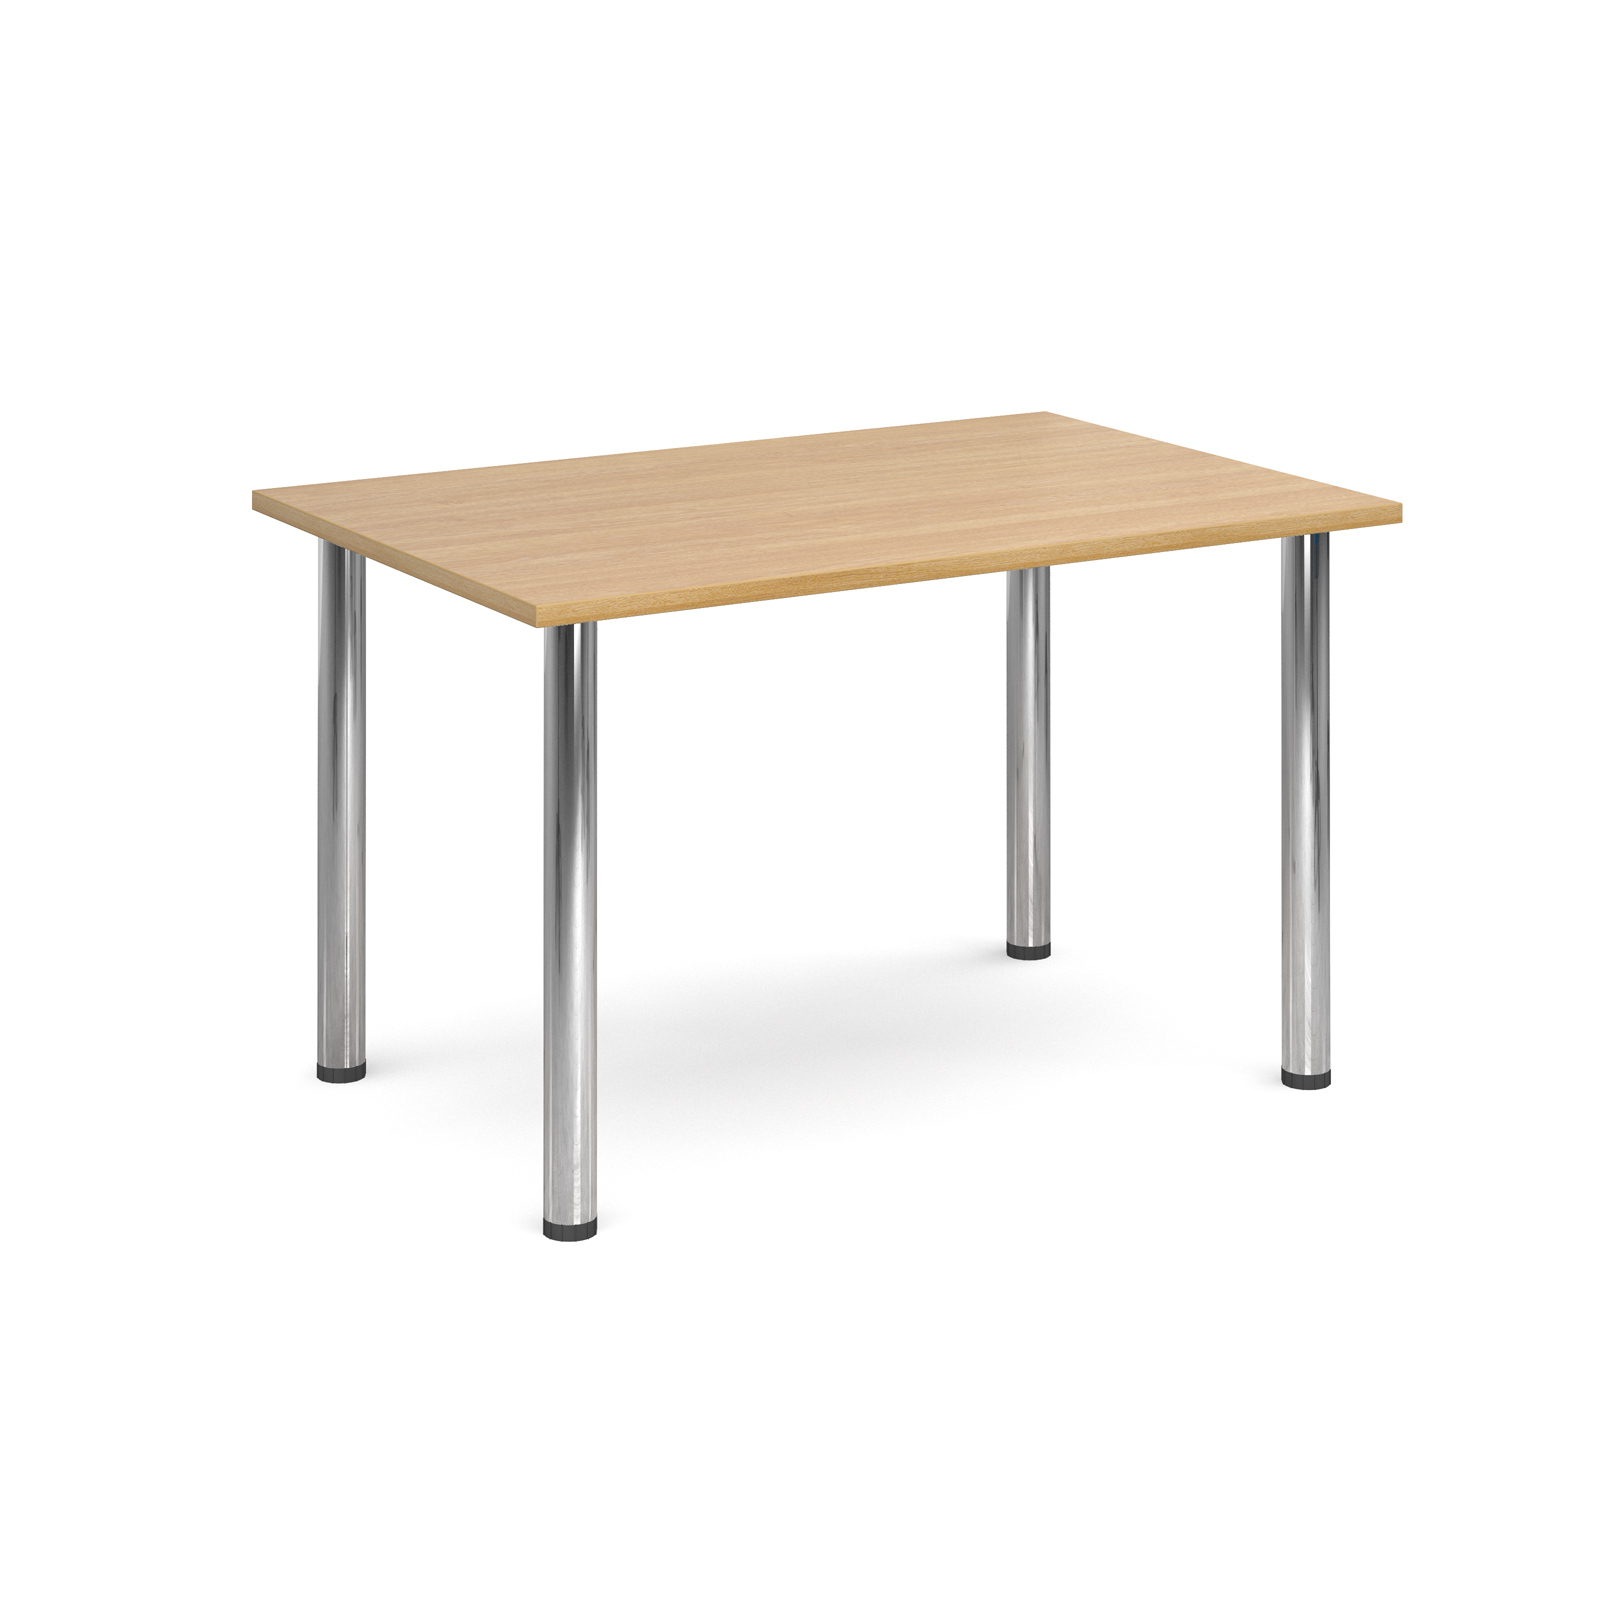 1300 Flexi table Chrome radial Legs-Oak